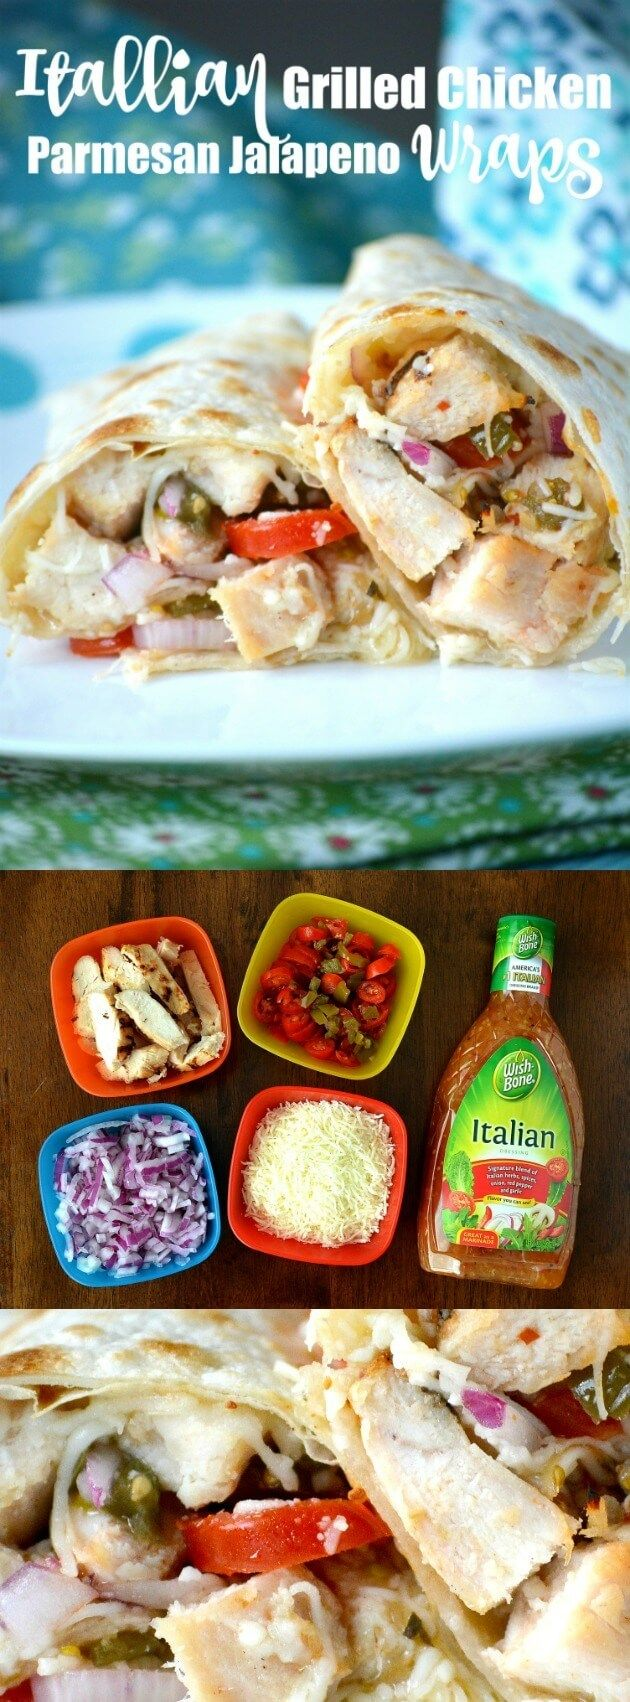 This Italian Grilled Chicken Parmesan Jalapeno Wraps recipe is not hard to make, only uses a few ingredients, and is delicious and ready in just about 20 minutes! #ad